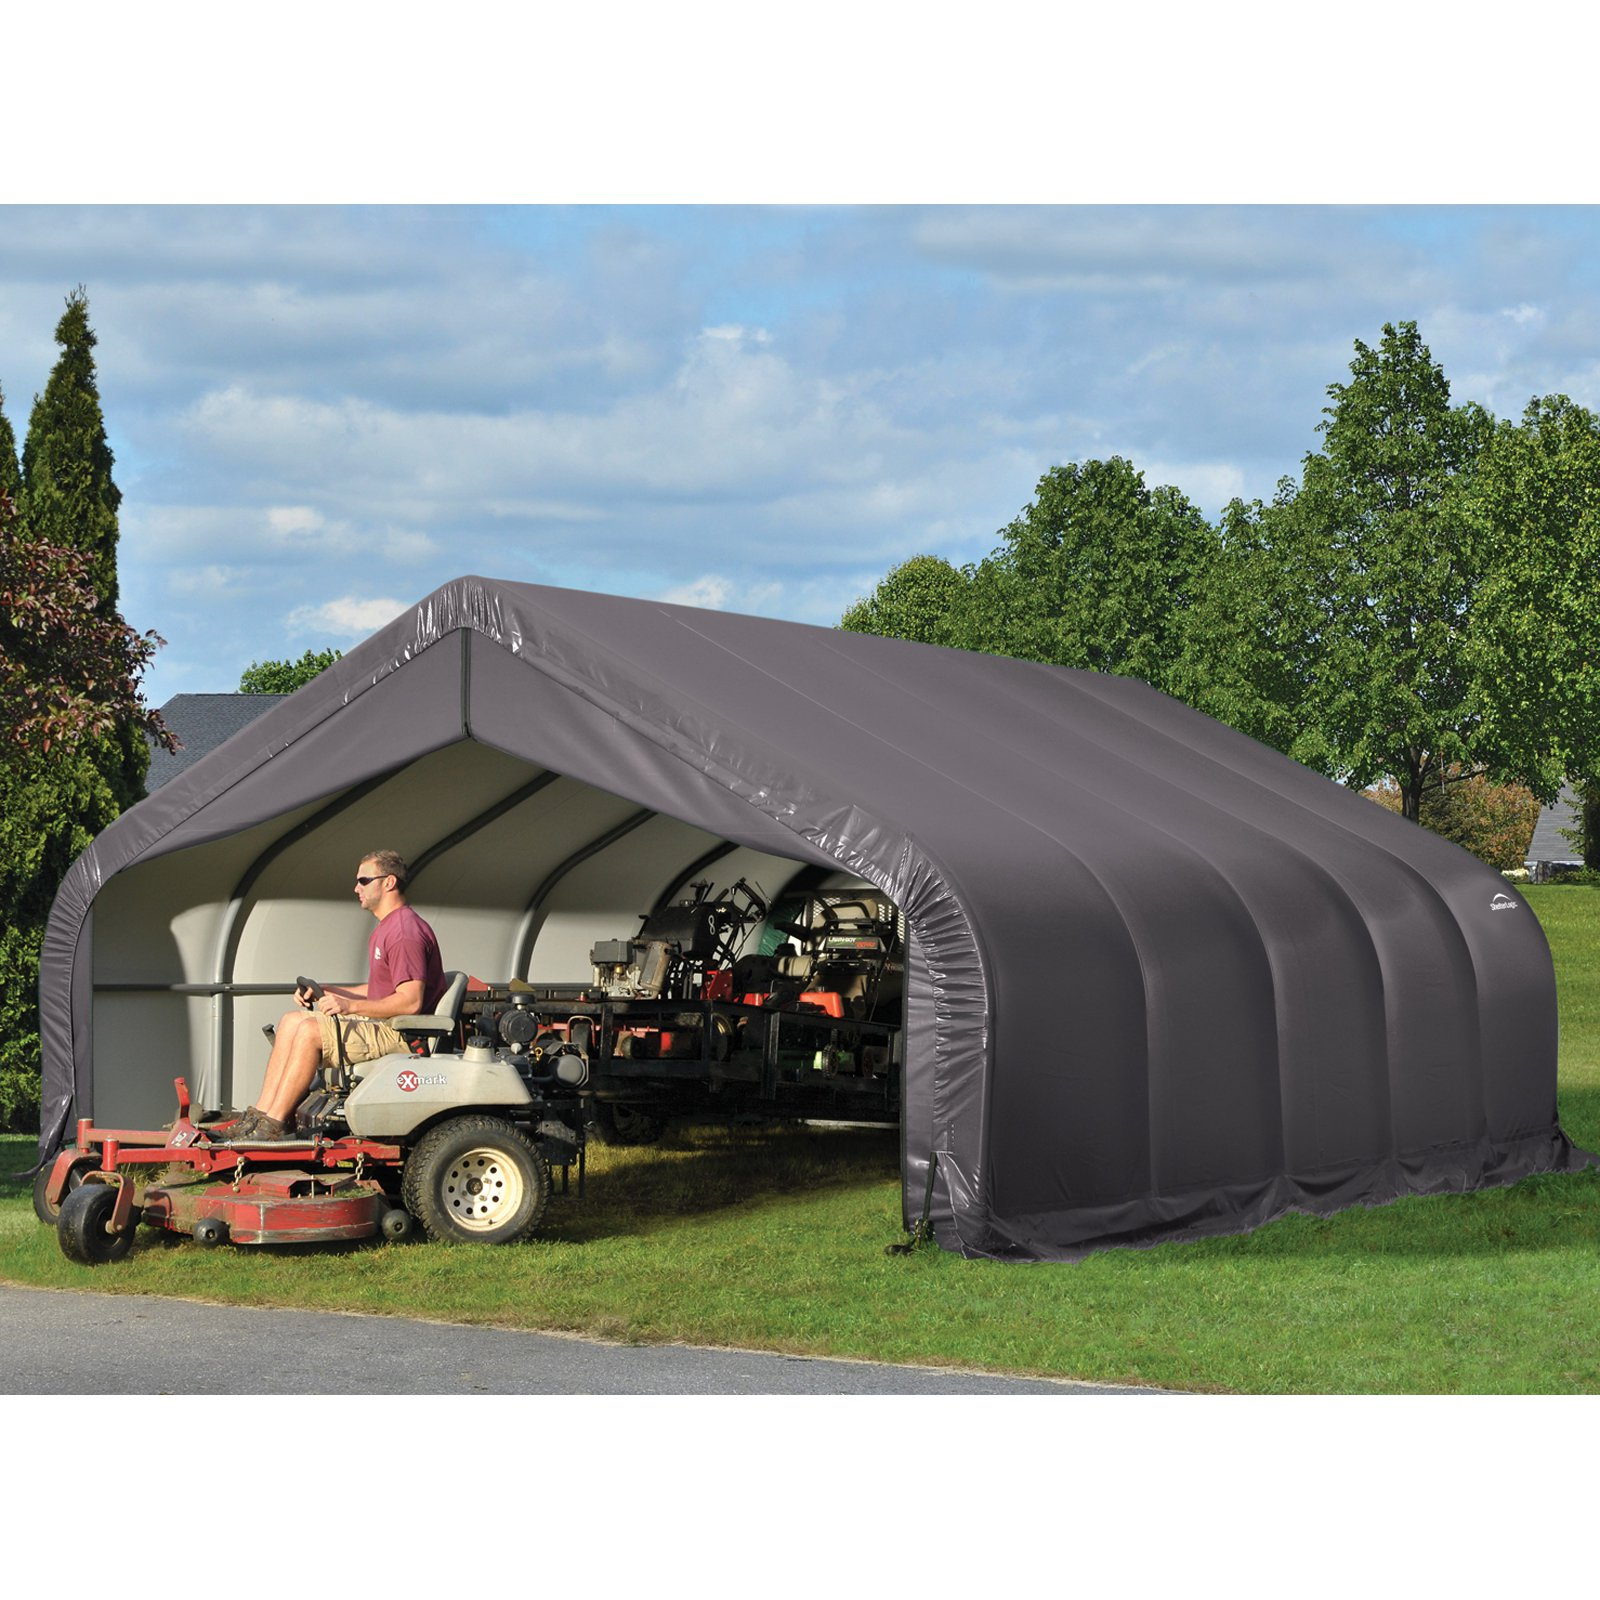 Shelterlogic 18' x 24' x 11' Peak Style Shelter, Green